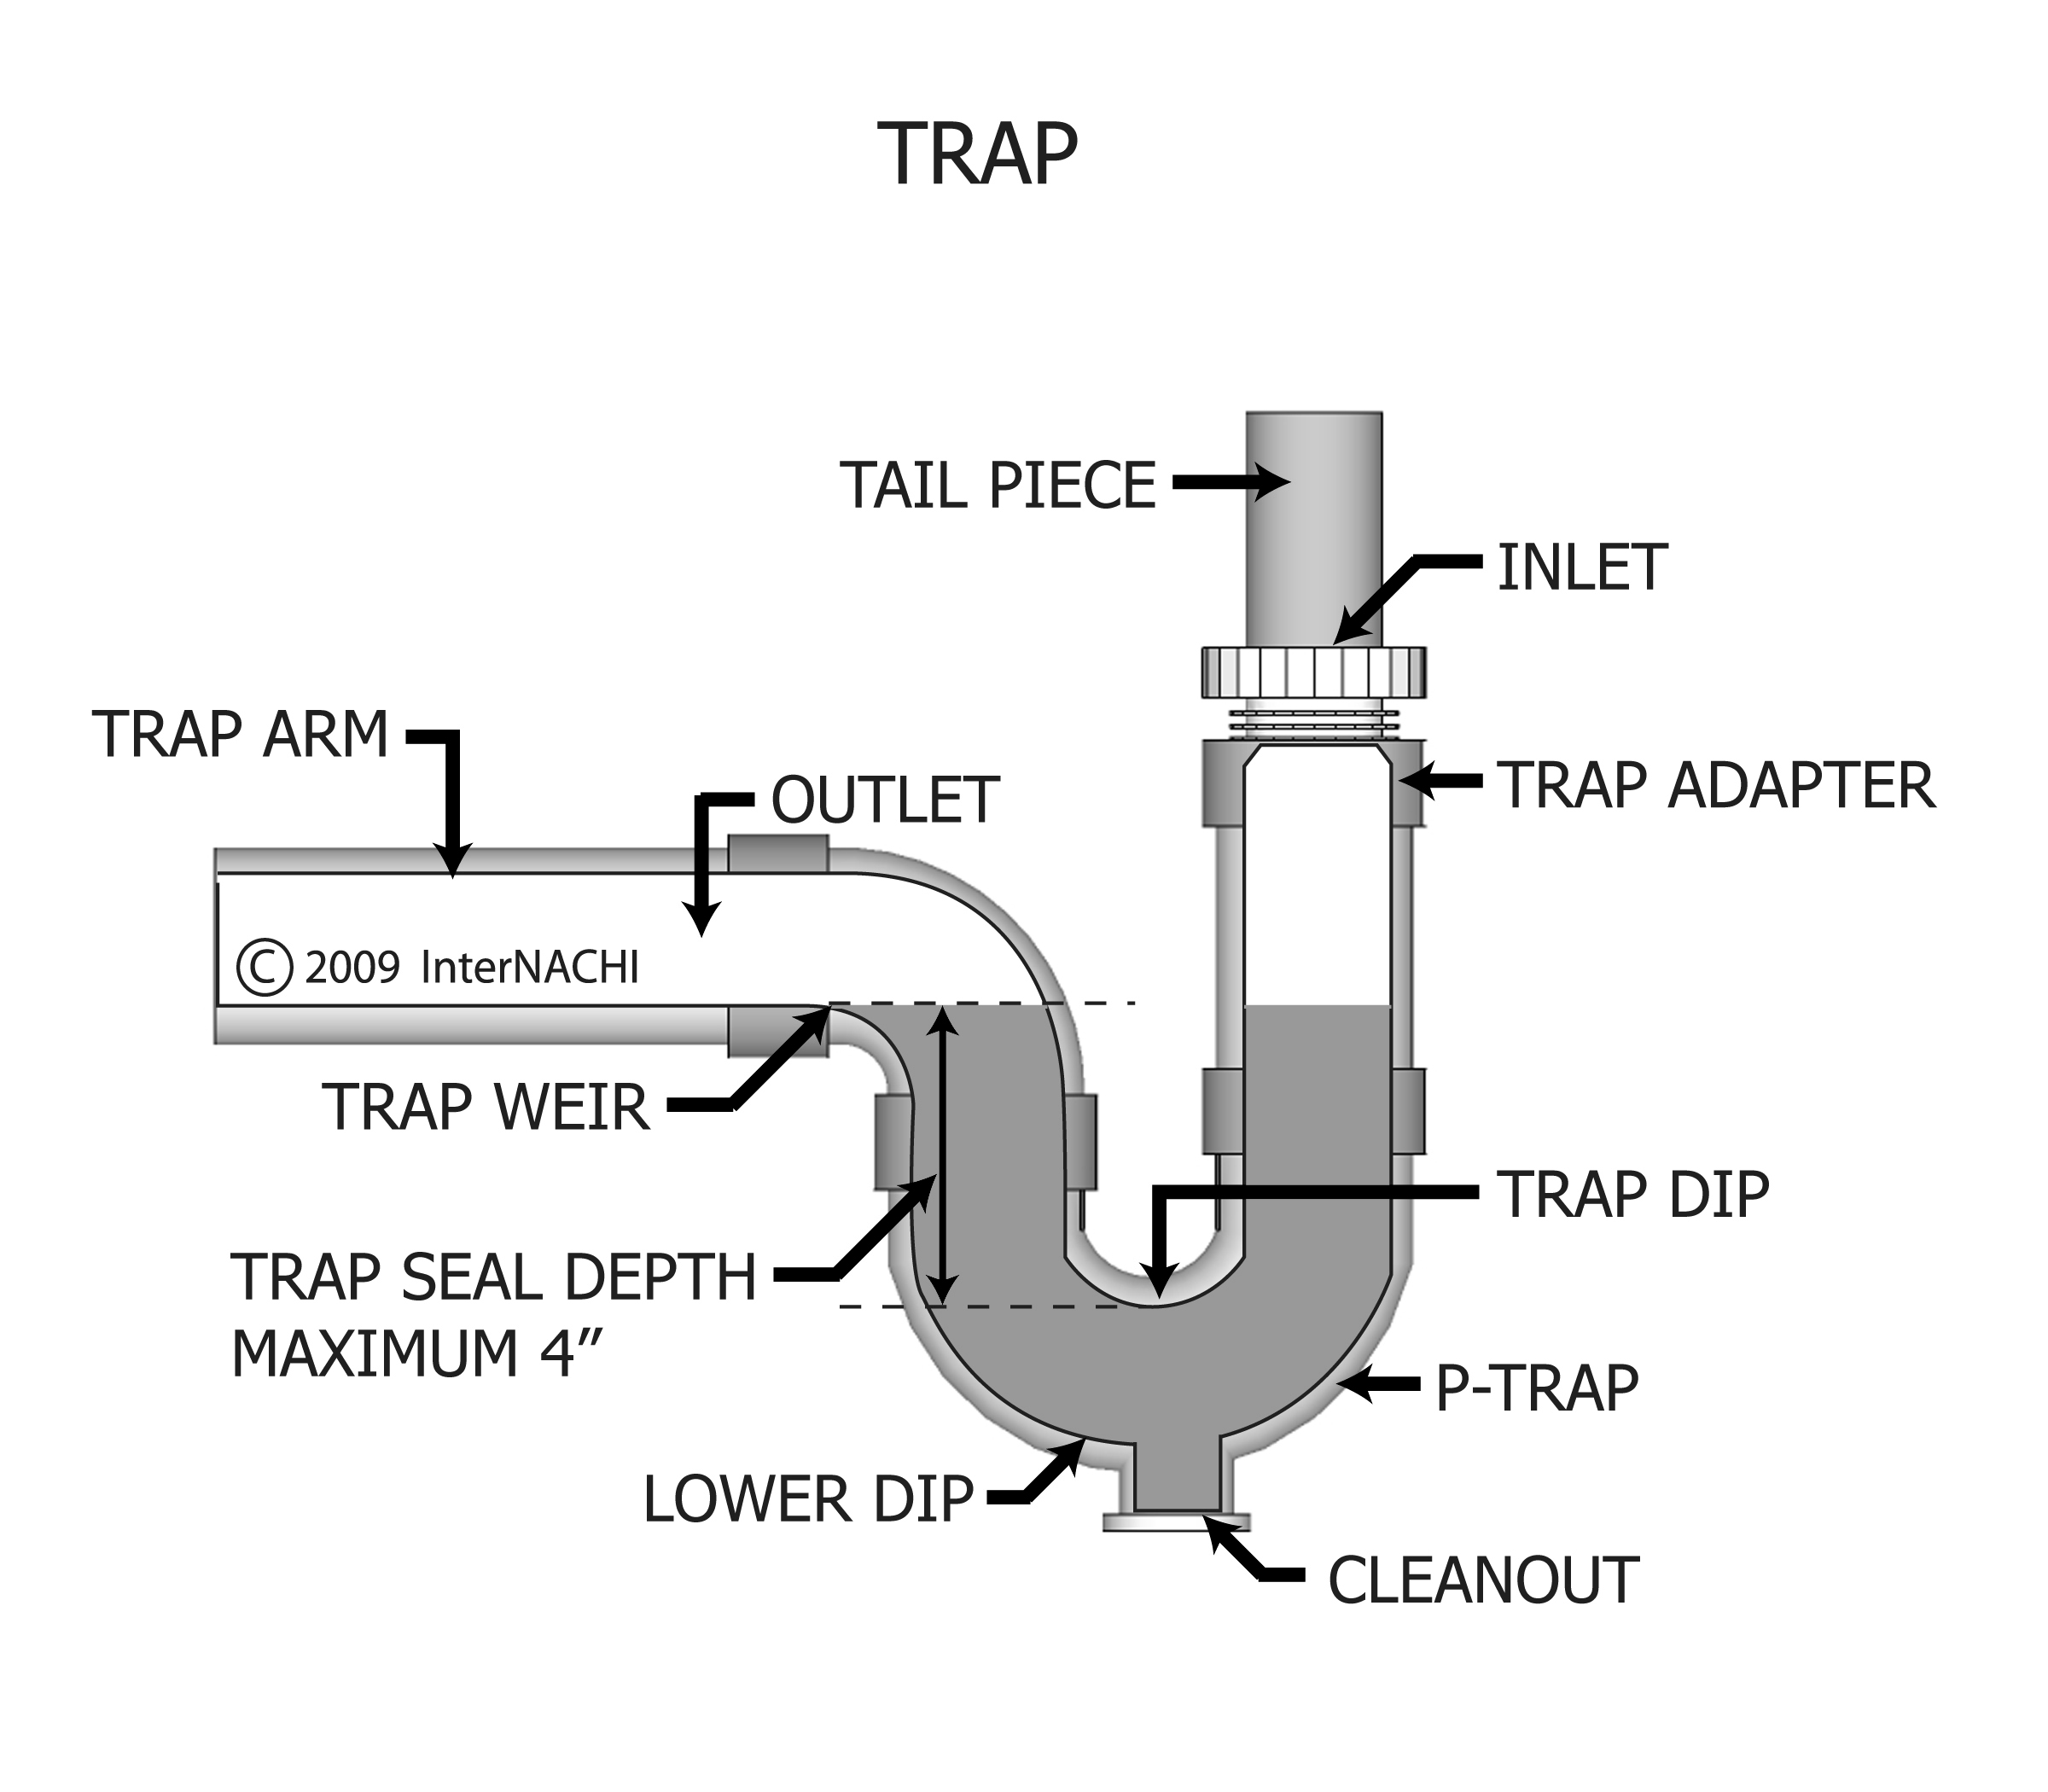 Trap - Inspection Gallery